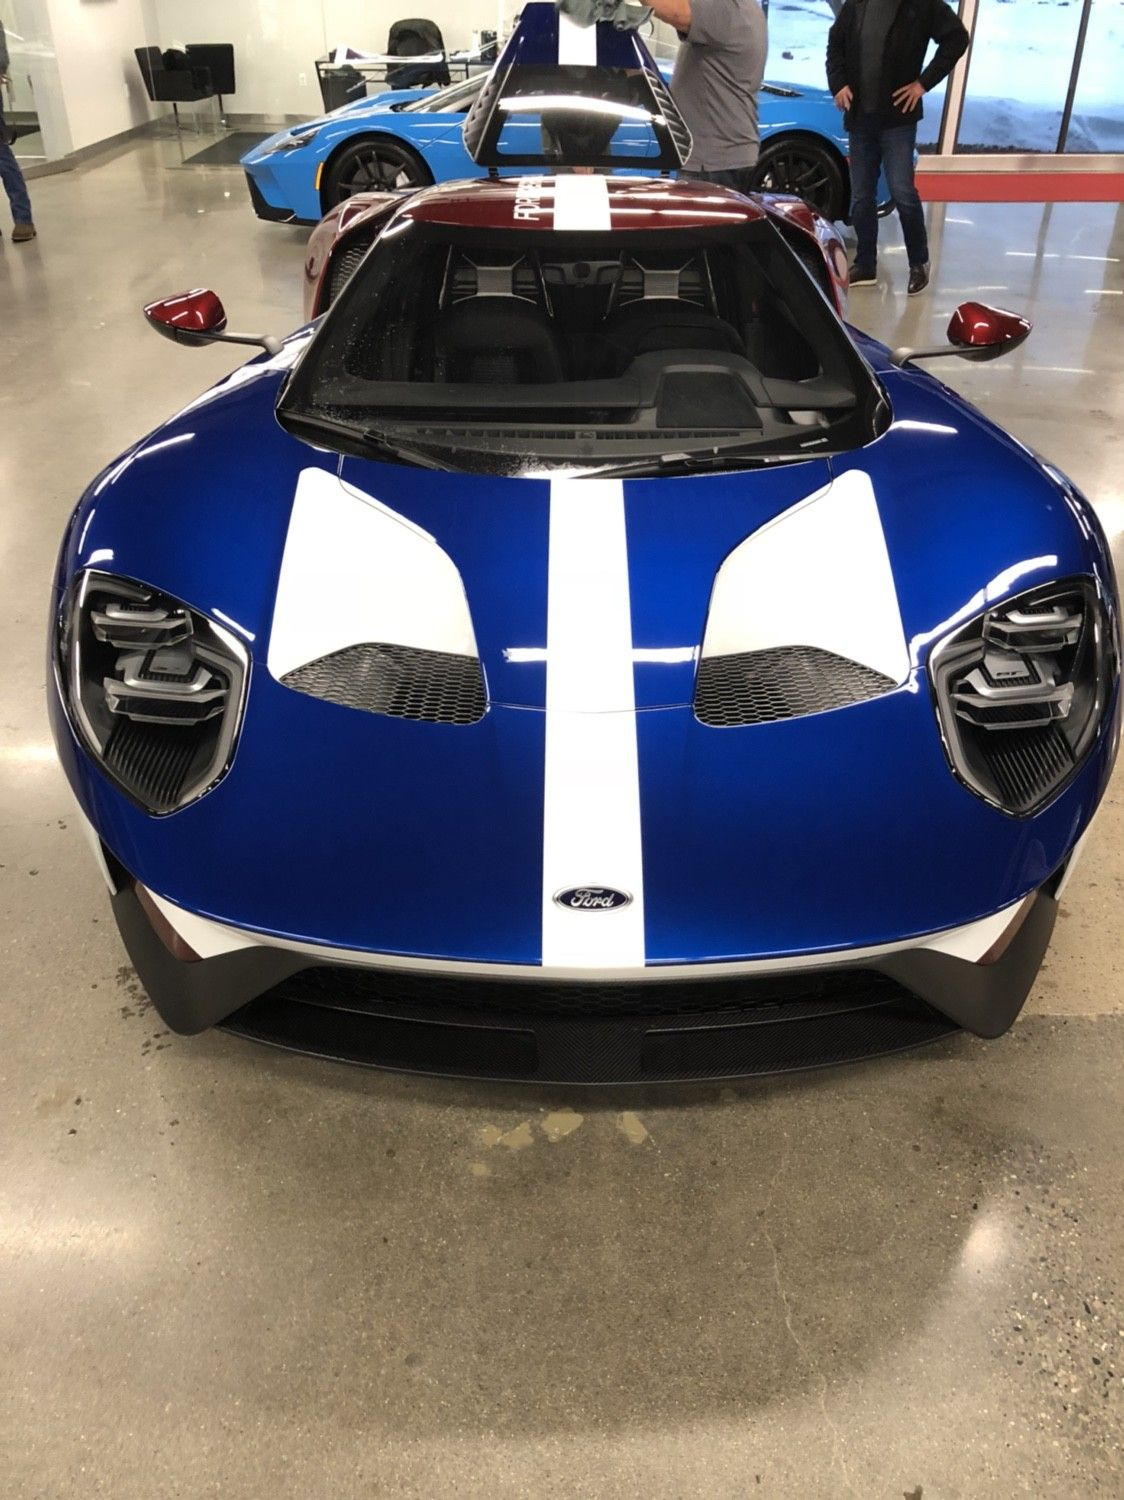 Ford Gt Victory Livery